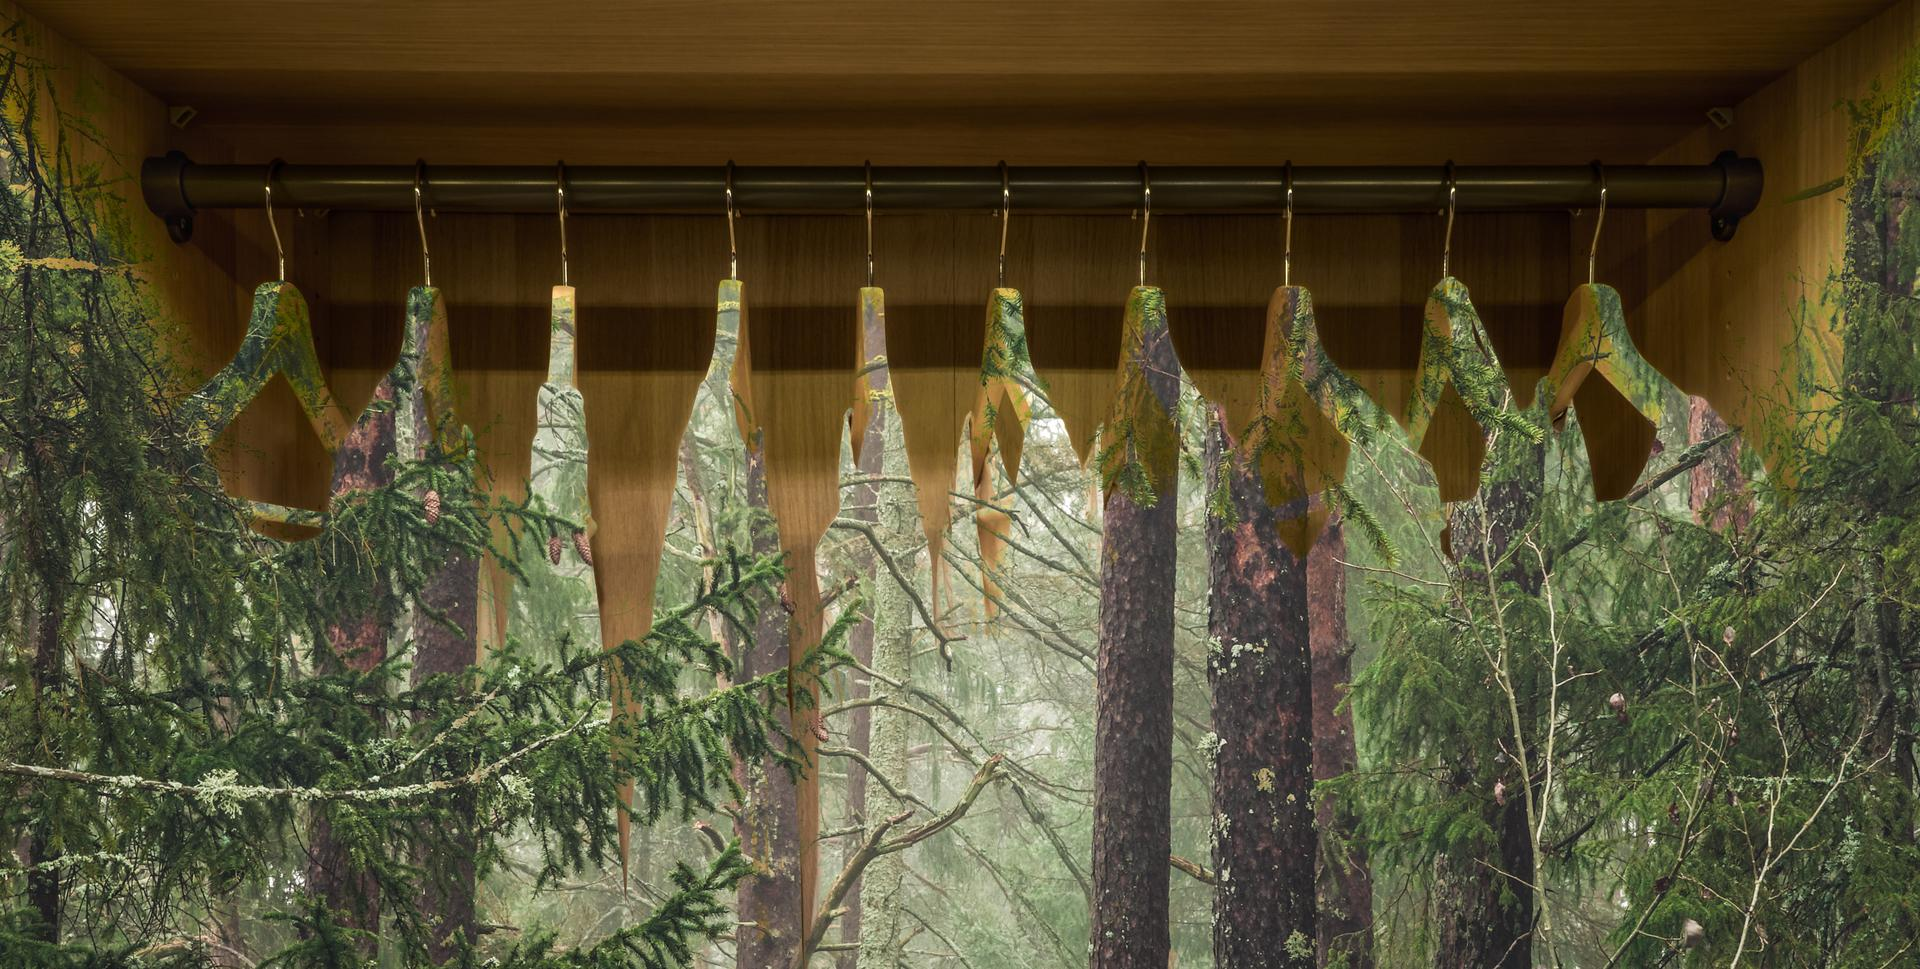 Clothes hanger with dresses in the forest. Concept for organic clothes, closet and sustainable fashion by B. Forenius